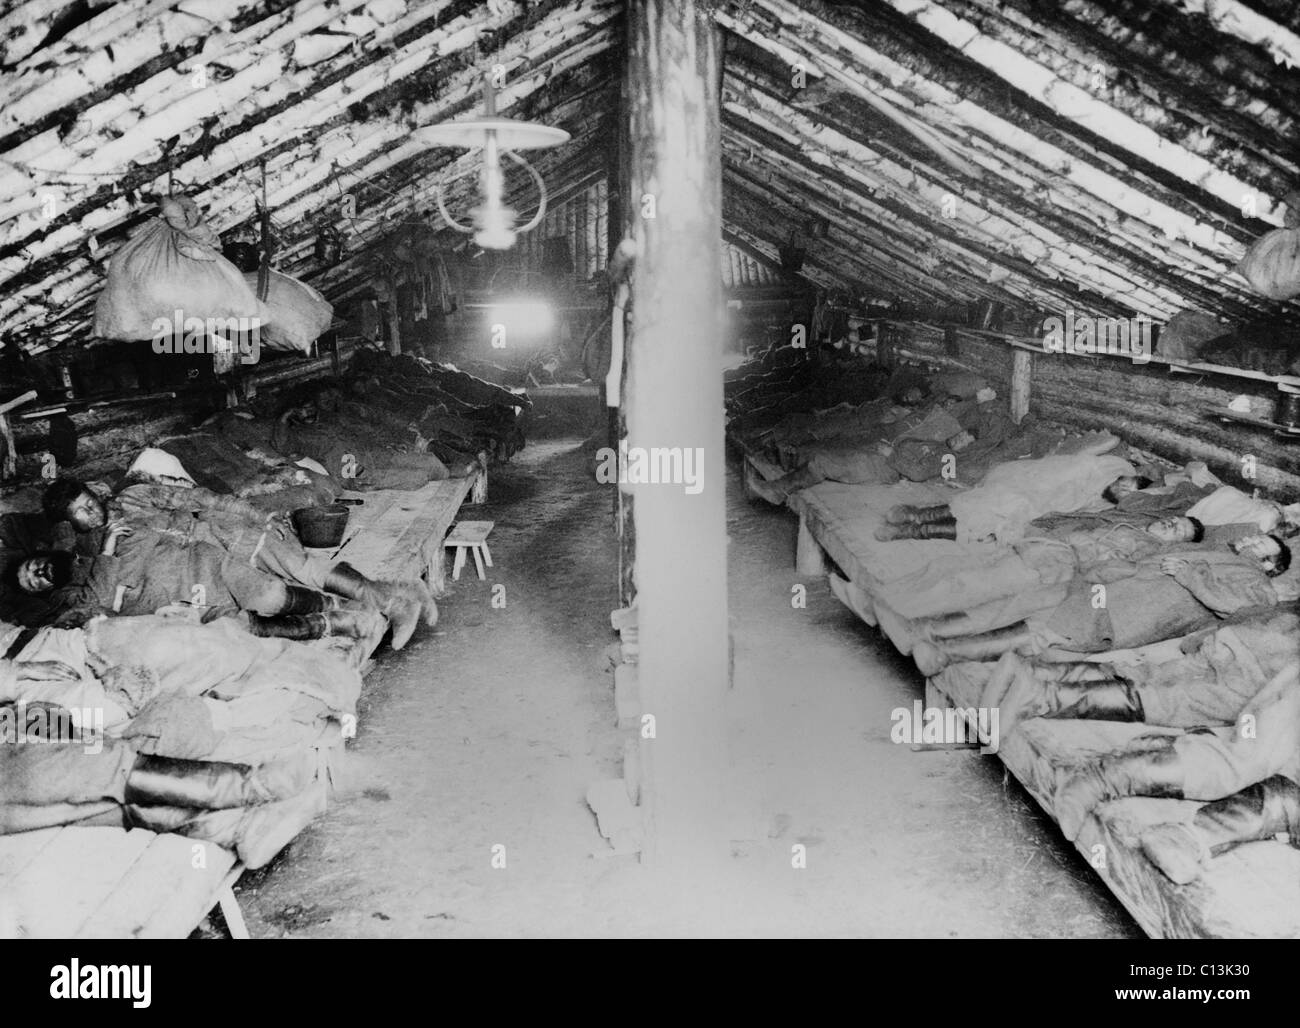 Russian convicts' sleeping quarters in a primitive Siberian prison camp barracks. Khabarovsk area in far eastern - Stock Image